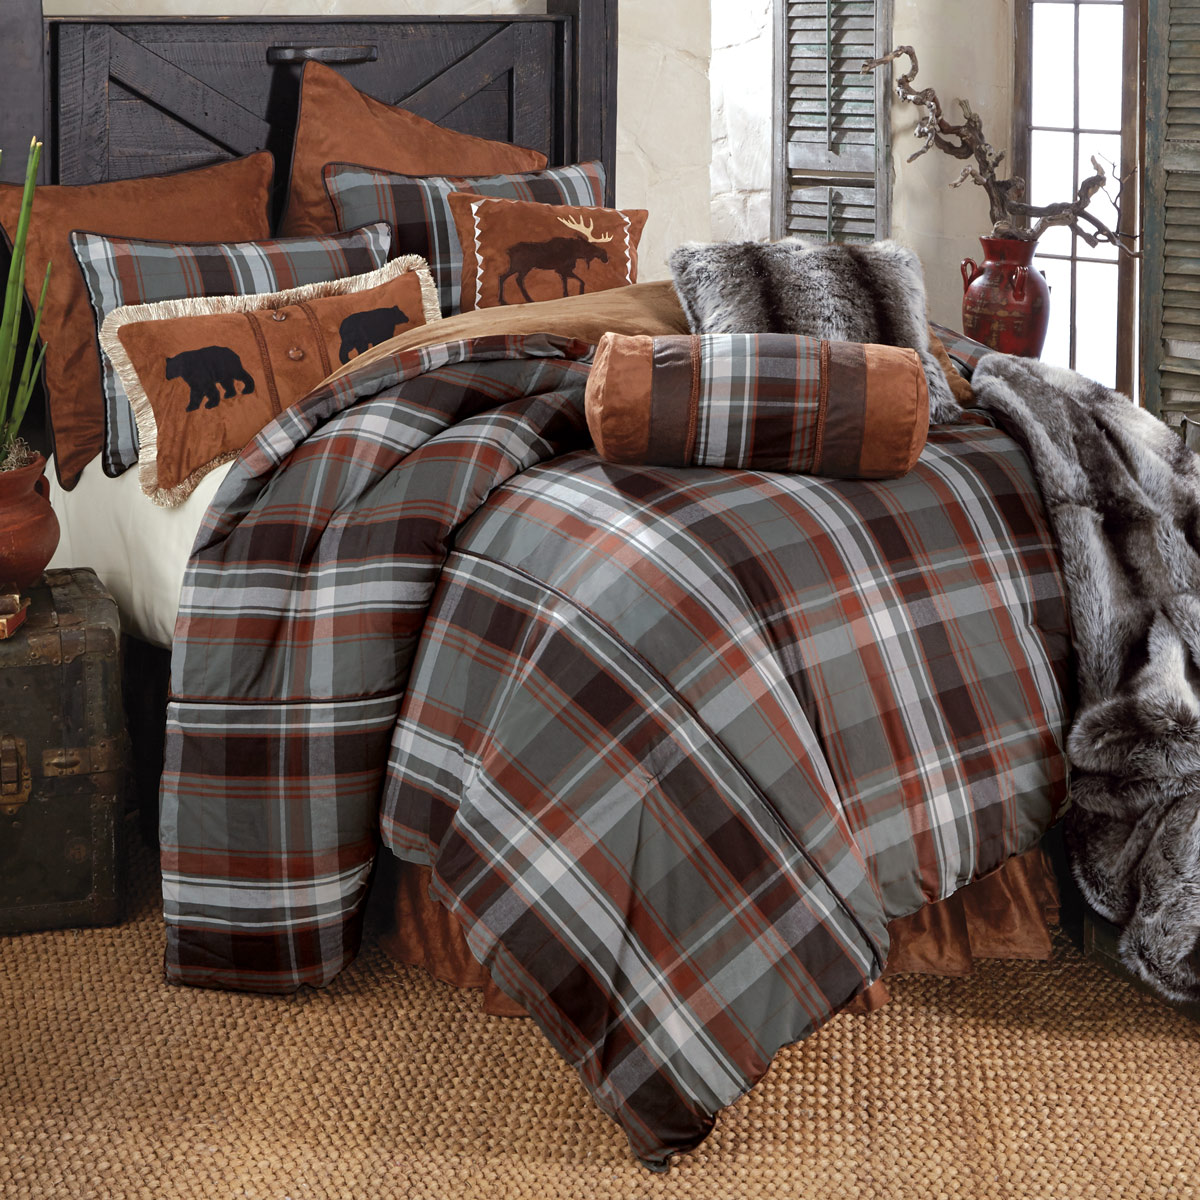 Appealing plaid comforter with rugs and wooden floor plus headboard and sidetable also pillows